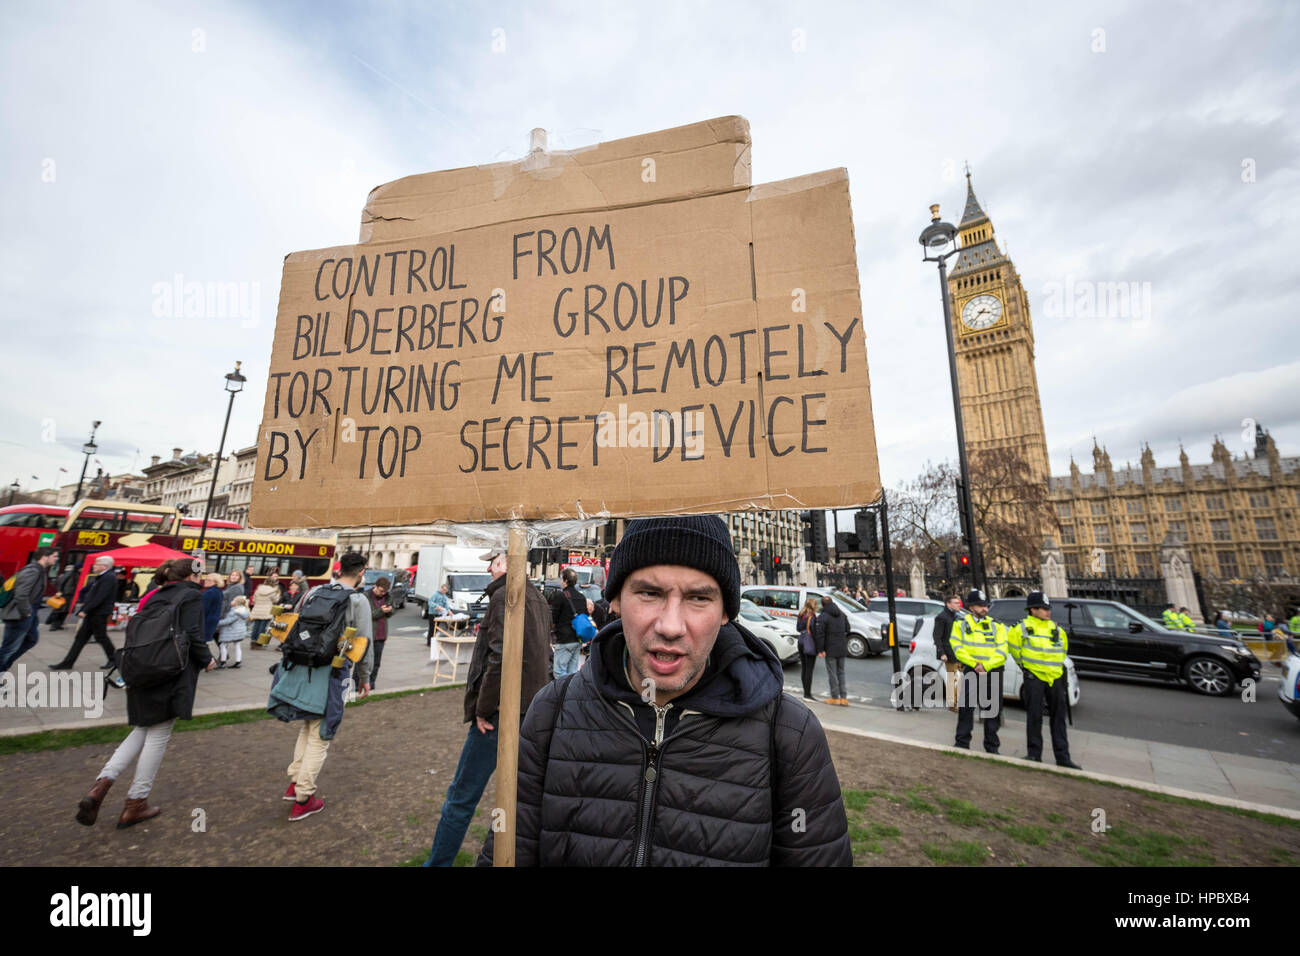 London, UK. 20th February, 2017. A conspiracy theorist in the crowds during the anti-trump protests. Anti-Trump - Stock Image